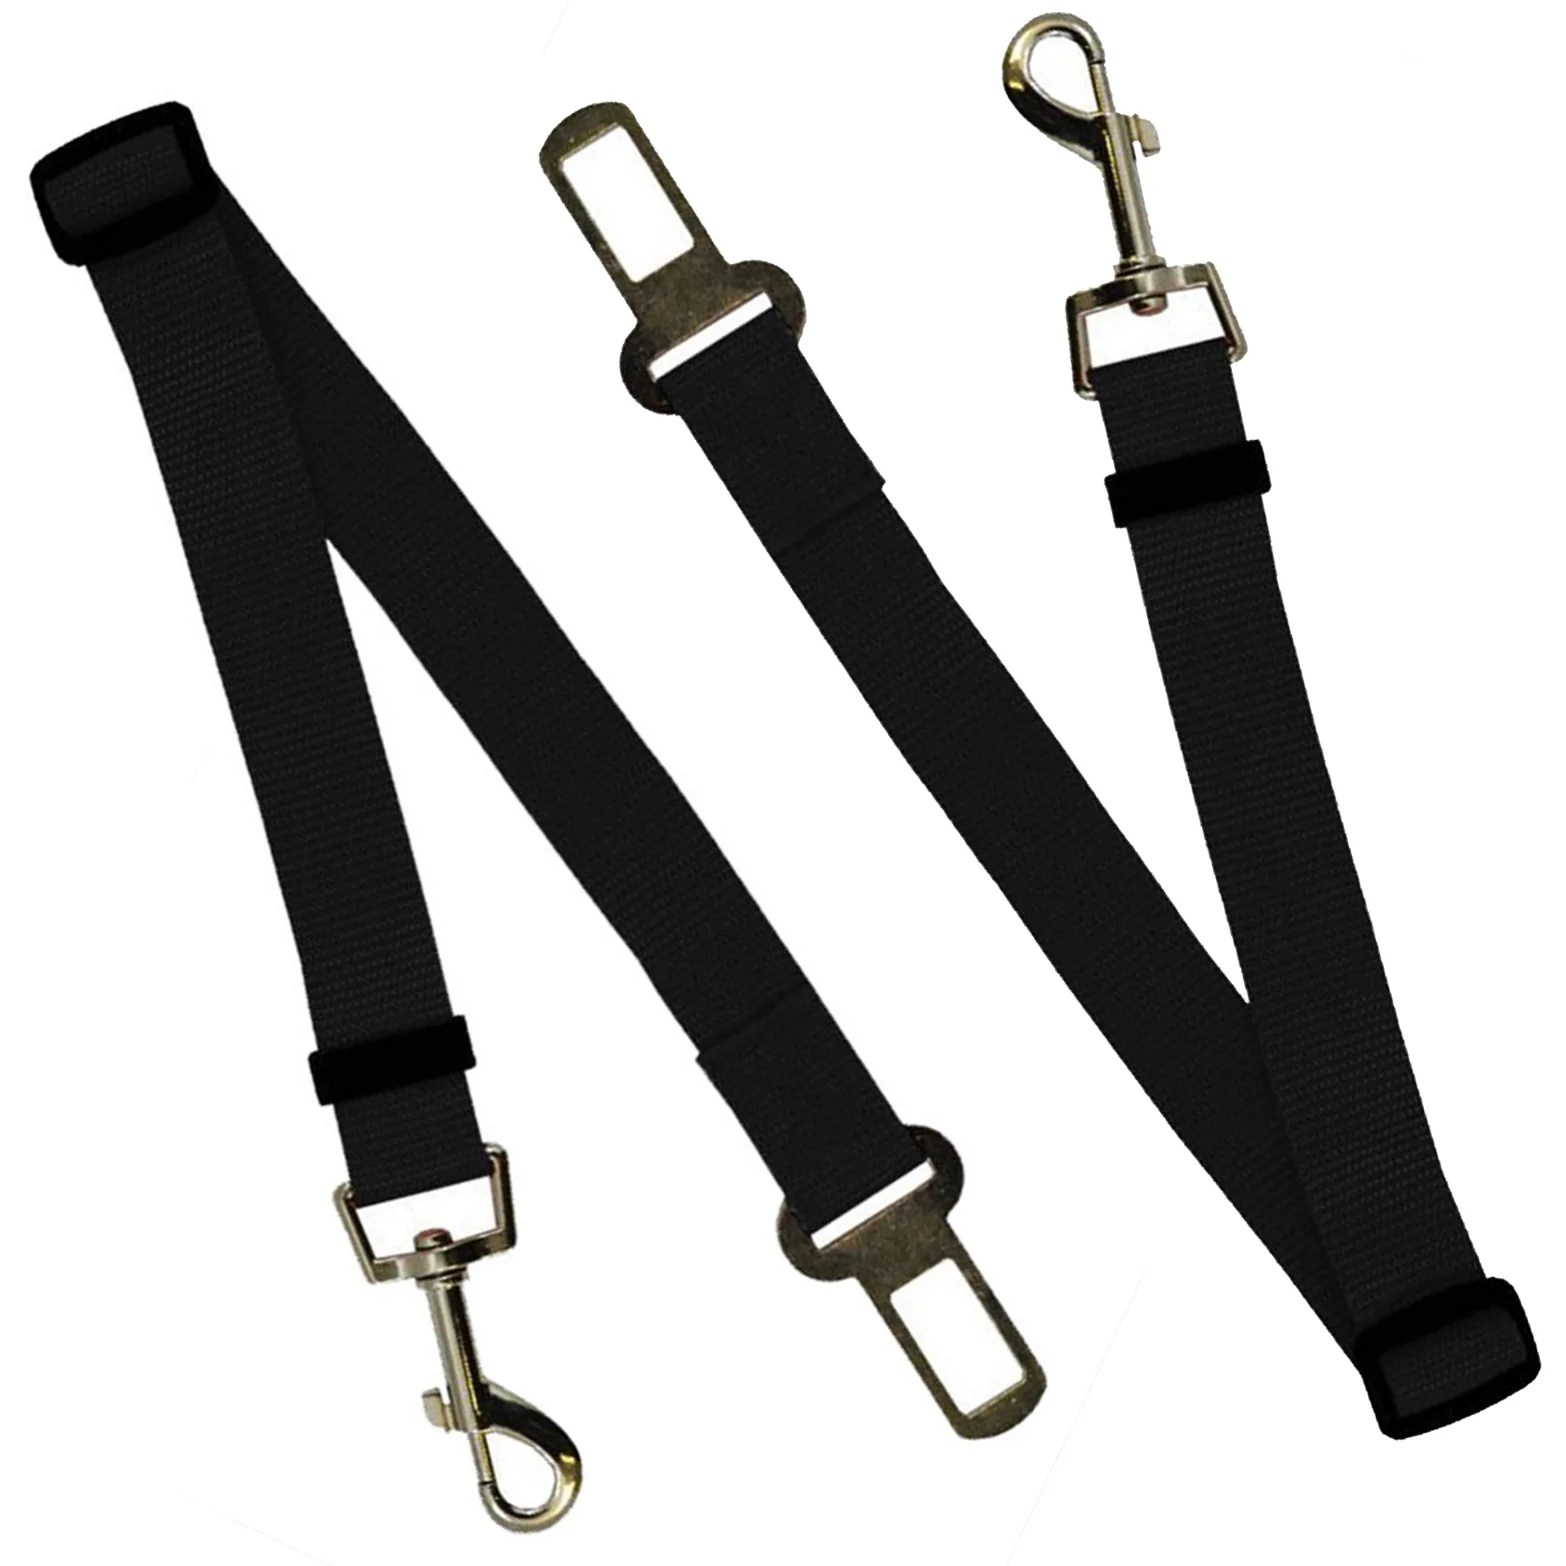 Safety Belt 2 Pack Pupguardian Safety Belt Set